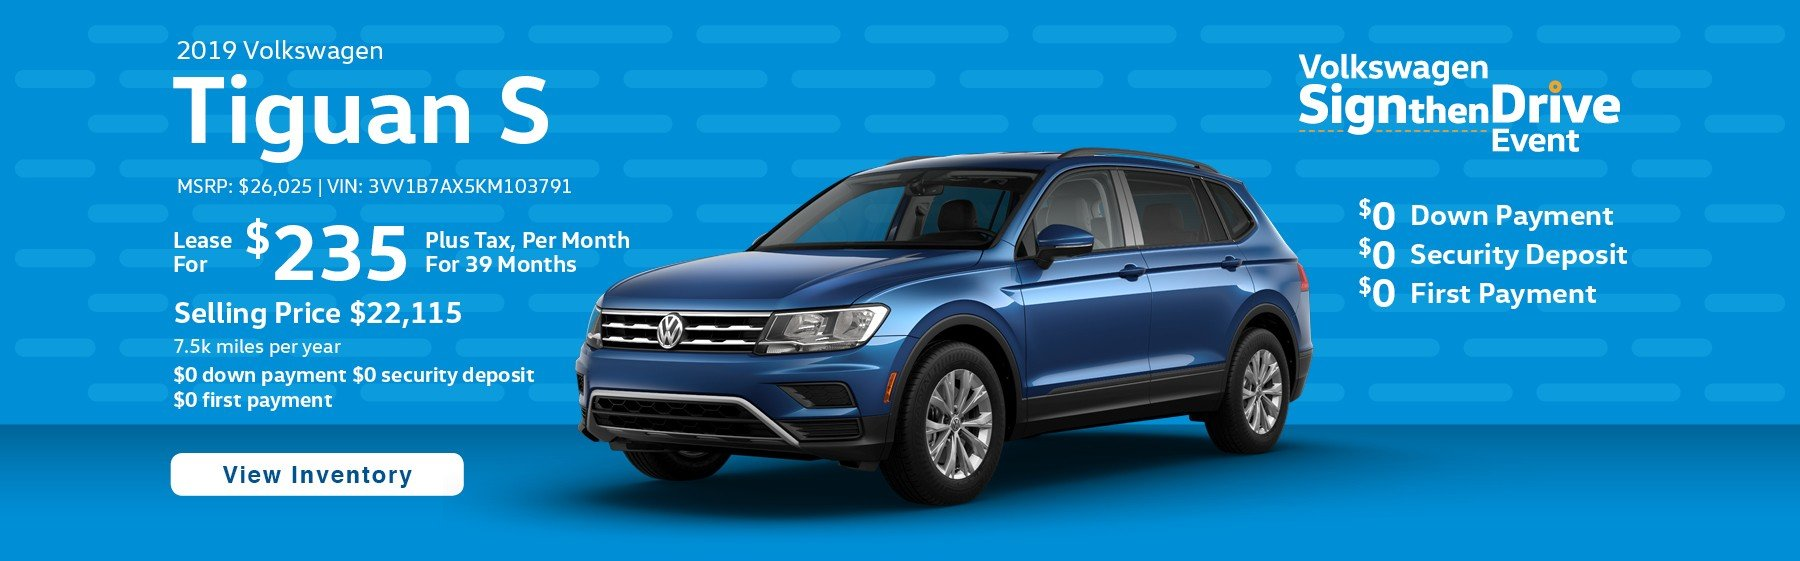 Lease the 2019 Tiguan S for $235 per month, plus tax for 39 months.